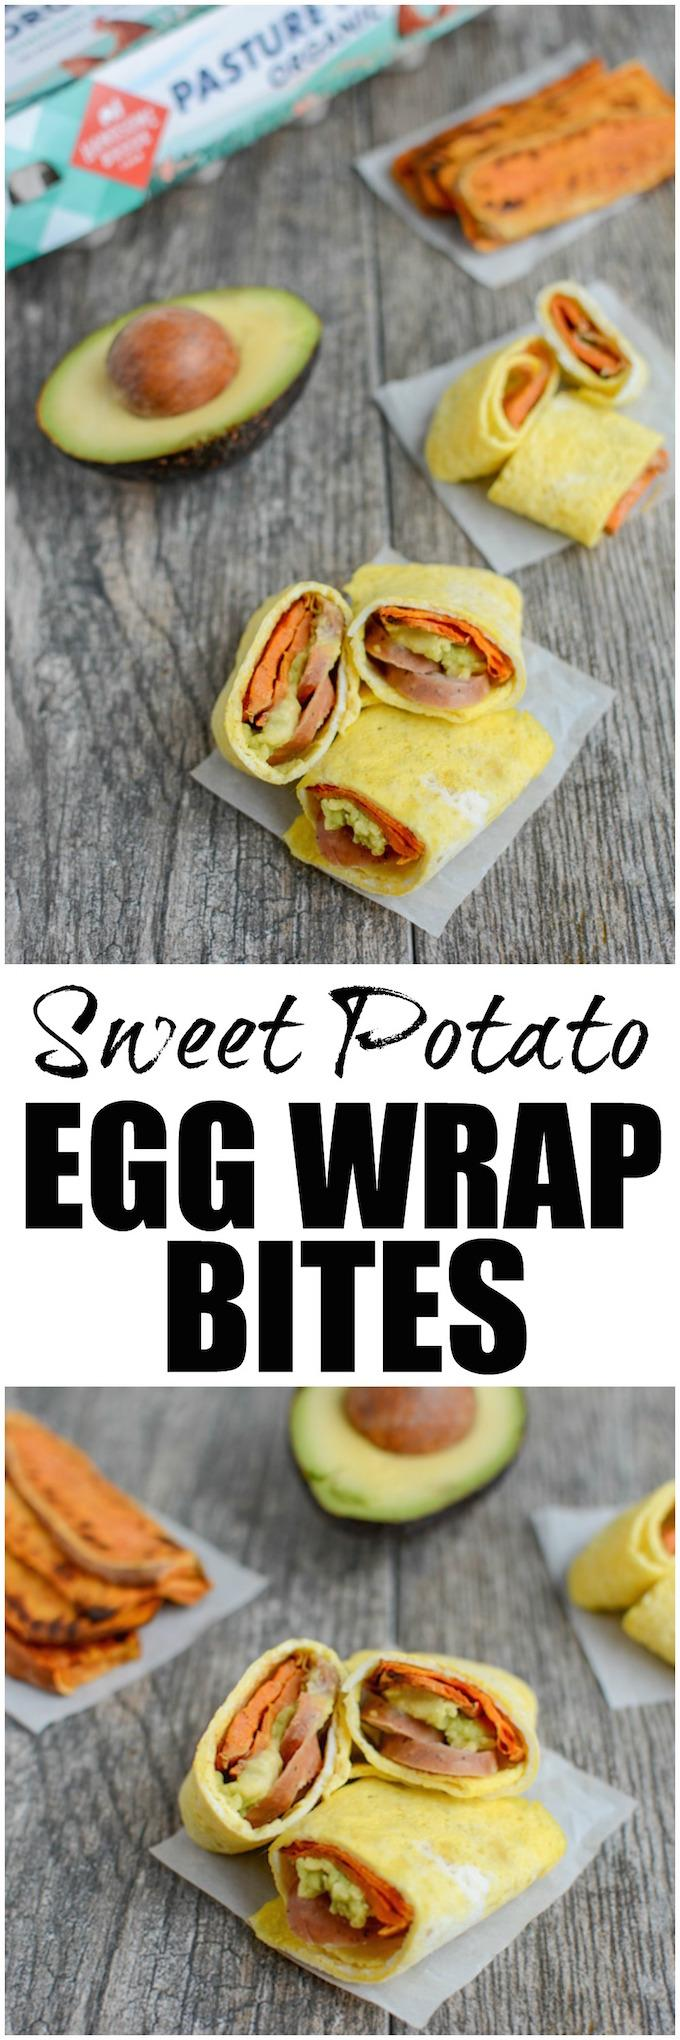 These Sweet Potato Egg Wrap Bites make an easy, healthy breakfast, lunch or snack. They're kid-friendly and can be prepped ahead of time so they come together quickly!